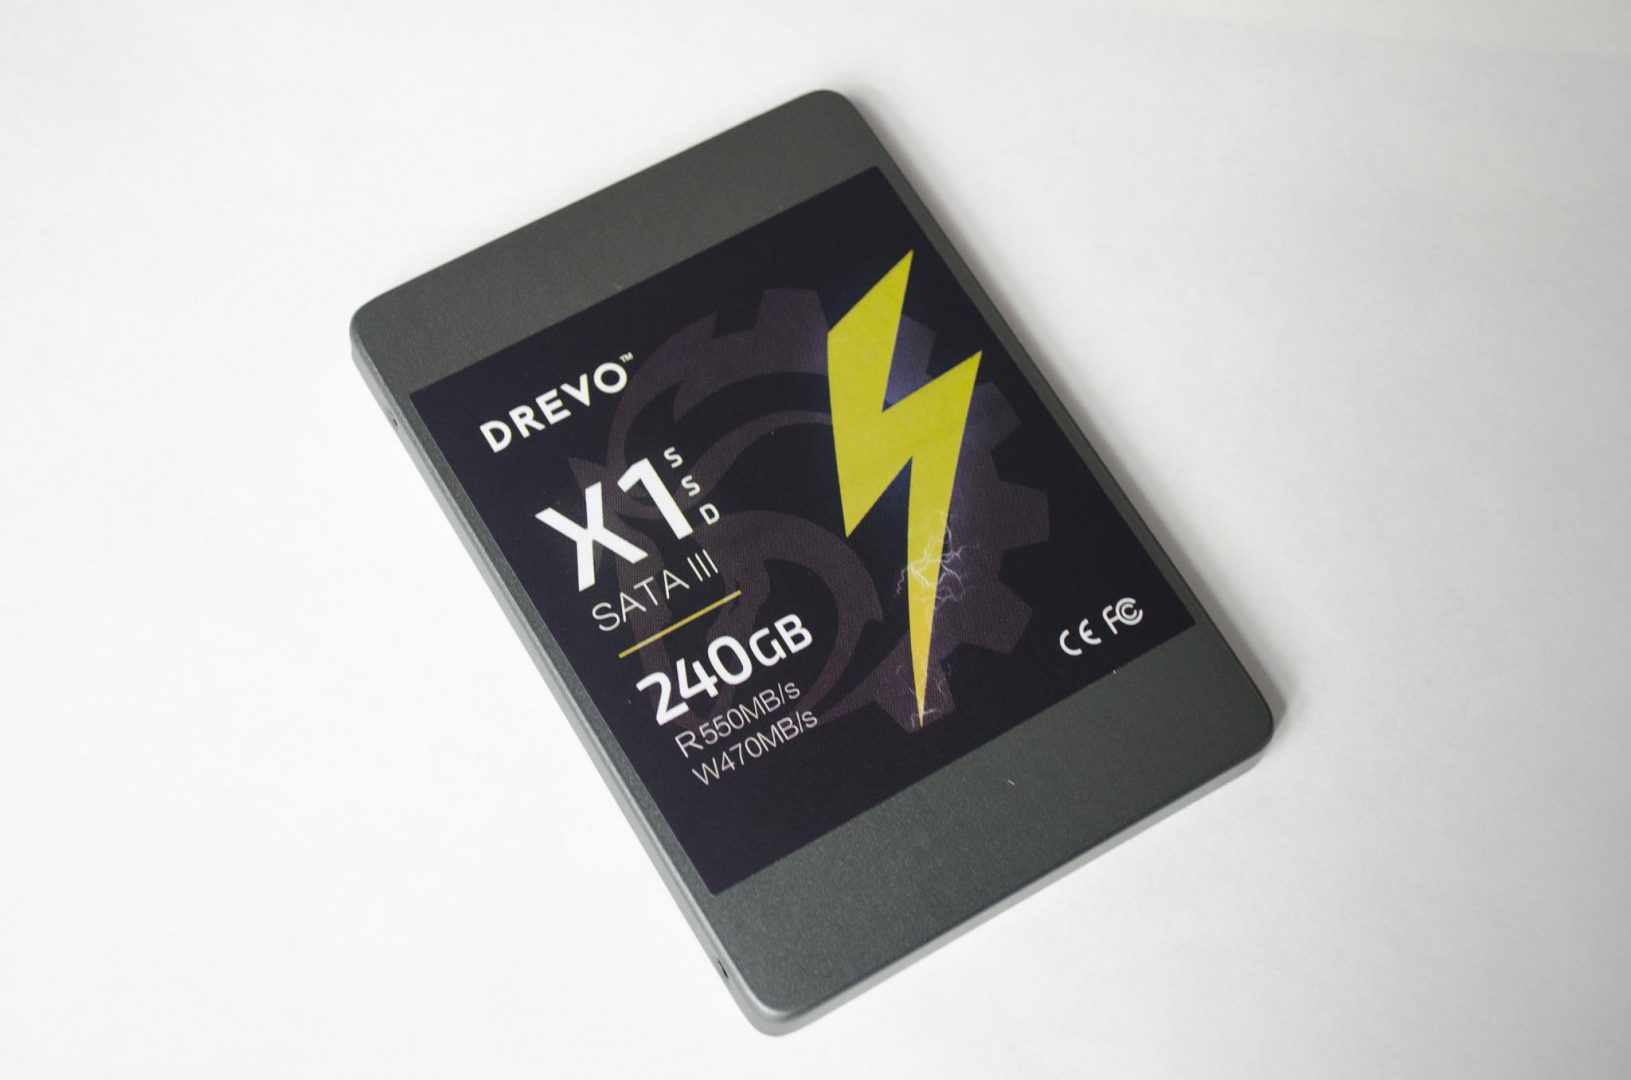 drevo-x1-ssd-review_4